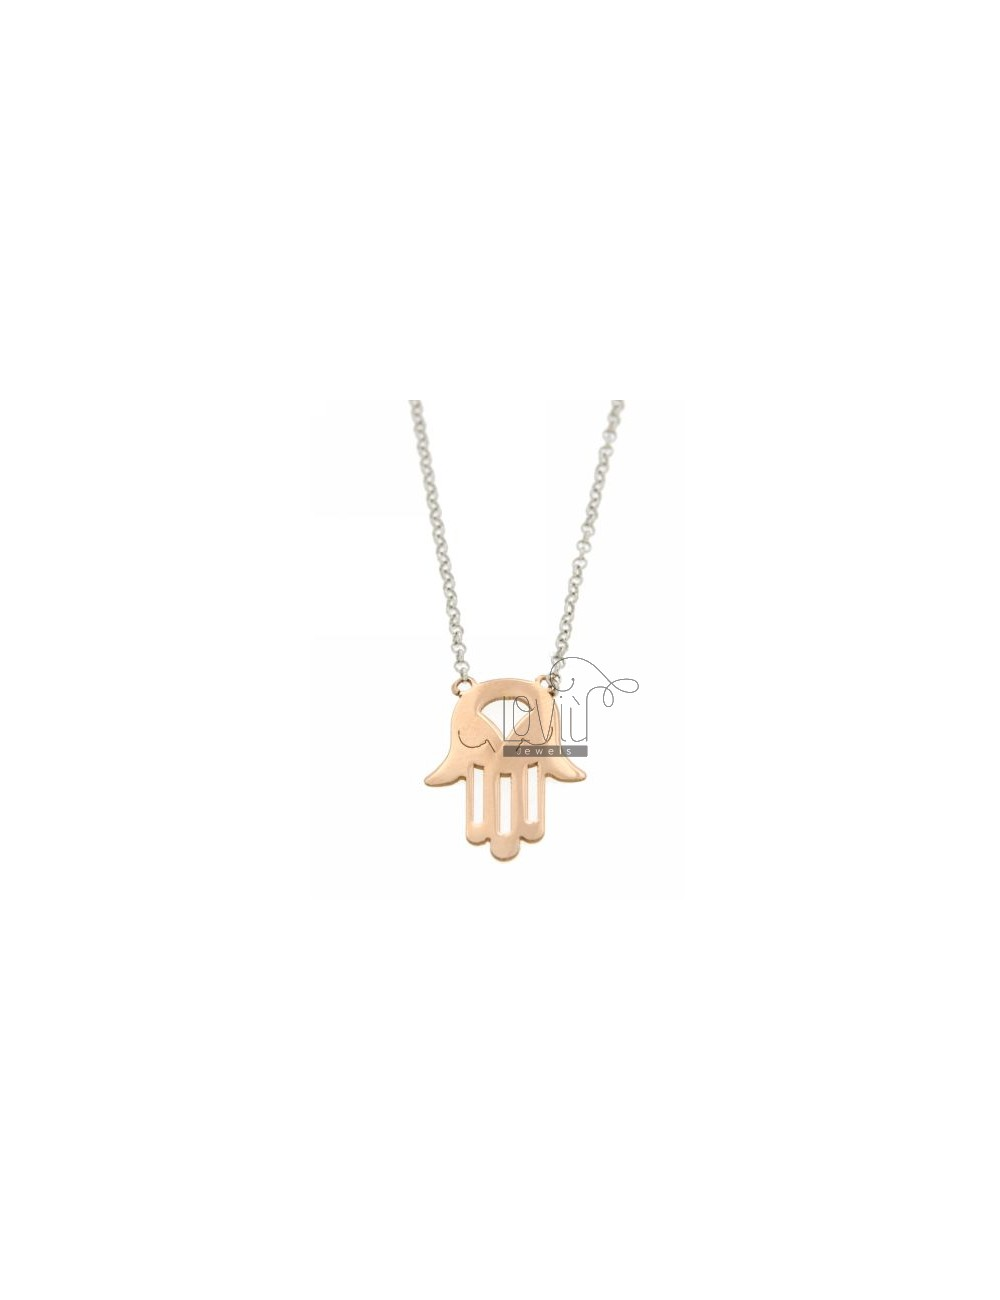 ROLO NECKLACE &39WITH CENTRAL HAND OF FATIMA IN PINK GOLD AND RHODIUM PLATED AG TIT 925 ‰ 43 CM